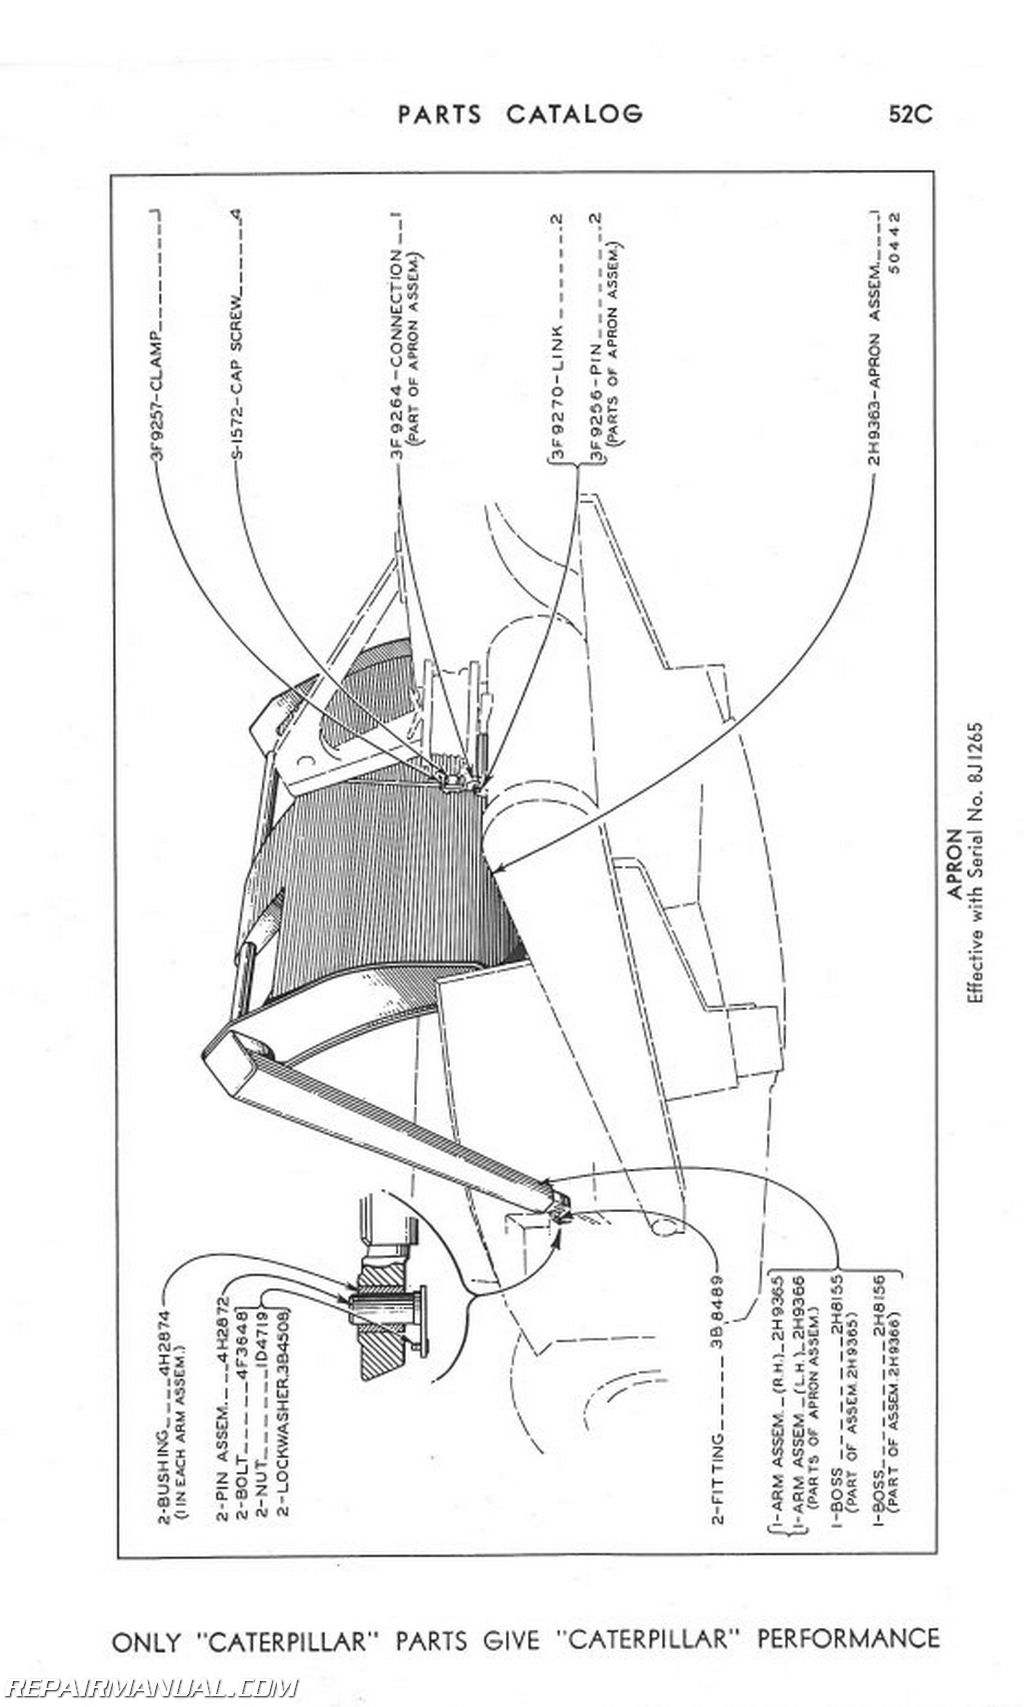 1987 Ford F250 Change Rear Axle Seal Replacement as well Toyota Ta a Fuel Filter Replacement also 121438819552 additionally Camaro Fuel Line Kit Holley 396 375hp 1969 together with 519935 Firebird Fuse Diagram. on chevy rear axle covers